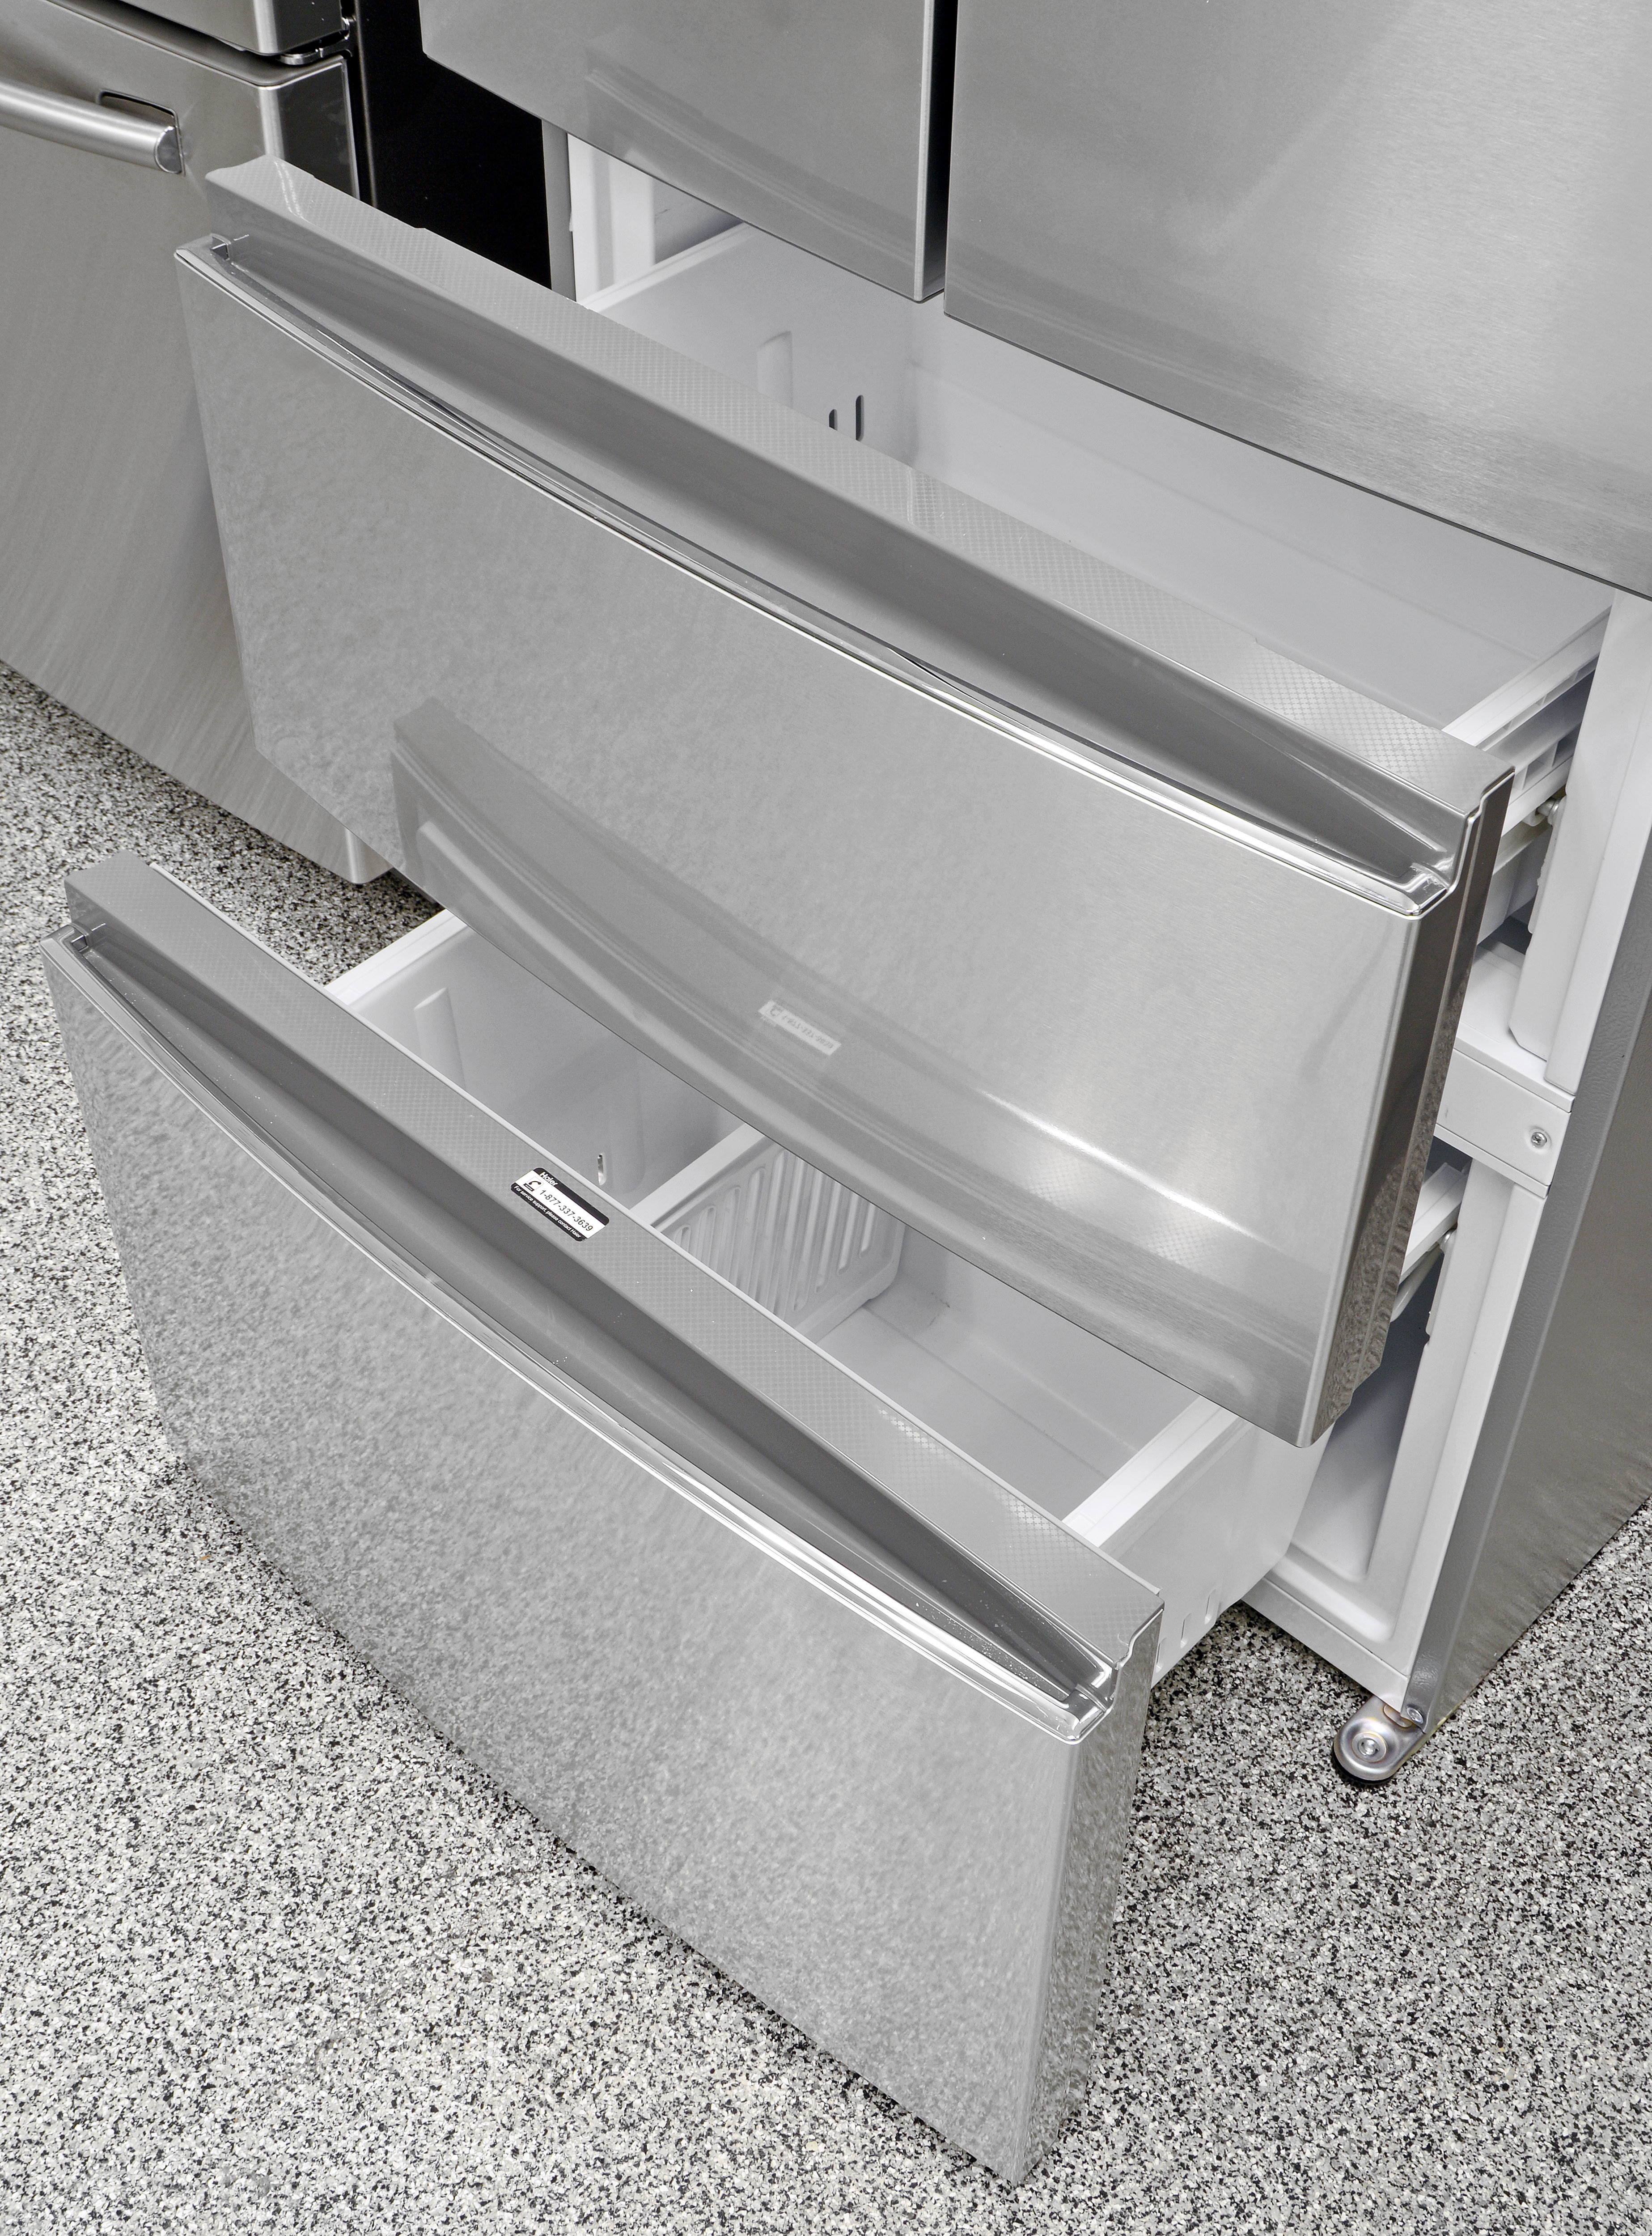 Both of the Haier HRF15N3AGS's freezer drawers are surprisingly accessible, as long as you're comfortable bending down.